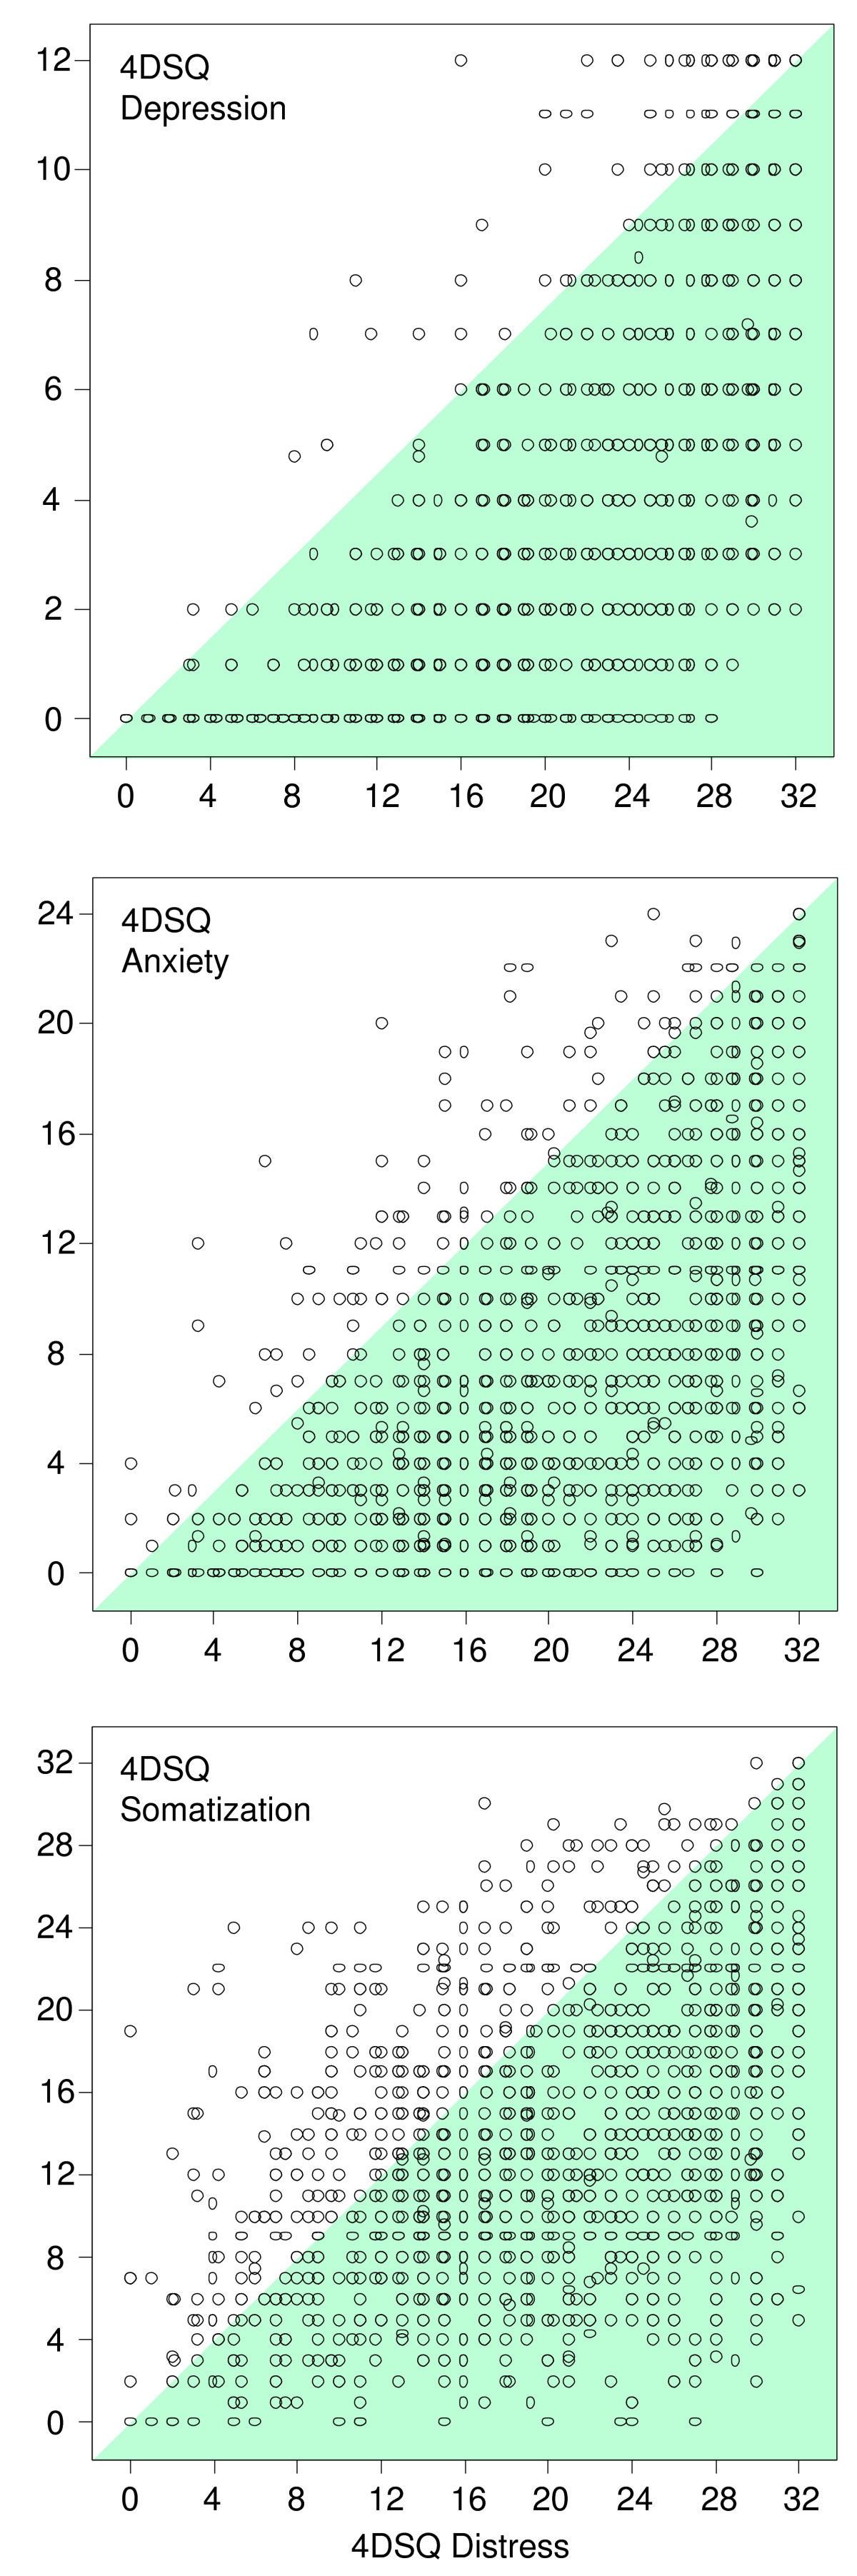 https://static-content.springer.com/image/art%3A10.1186%2F1471-244X-6-34/MediaObjects/12888_2006_Article_163_Fig5_HTML.jpg